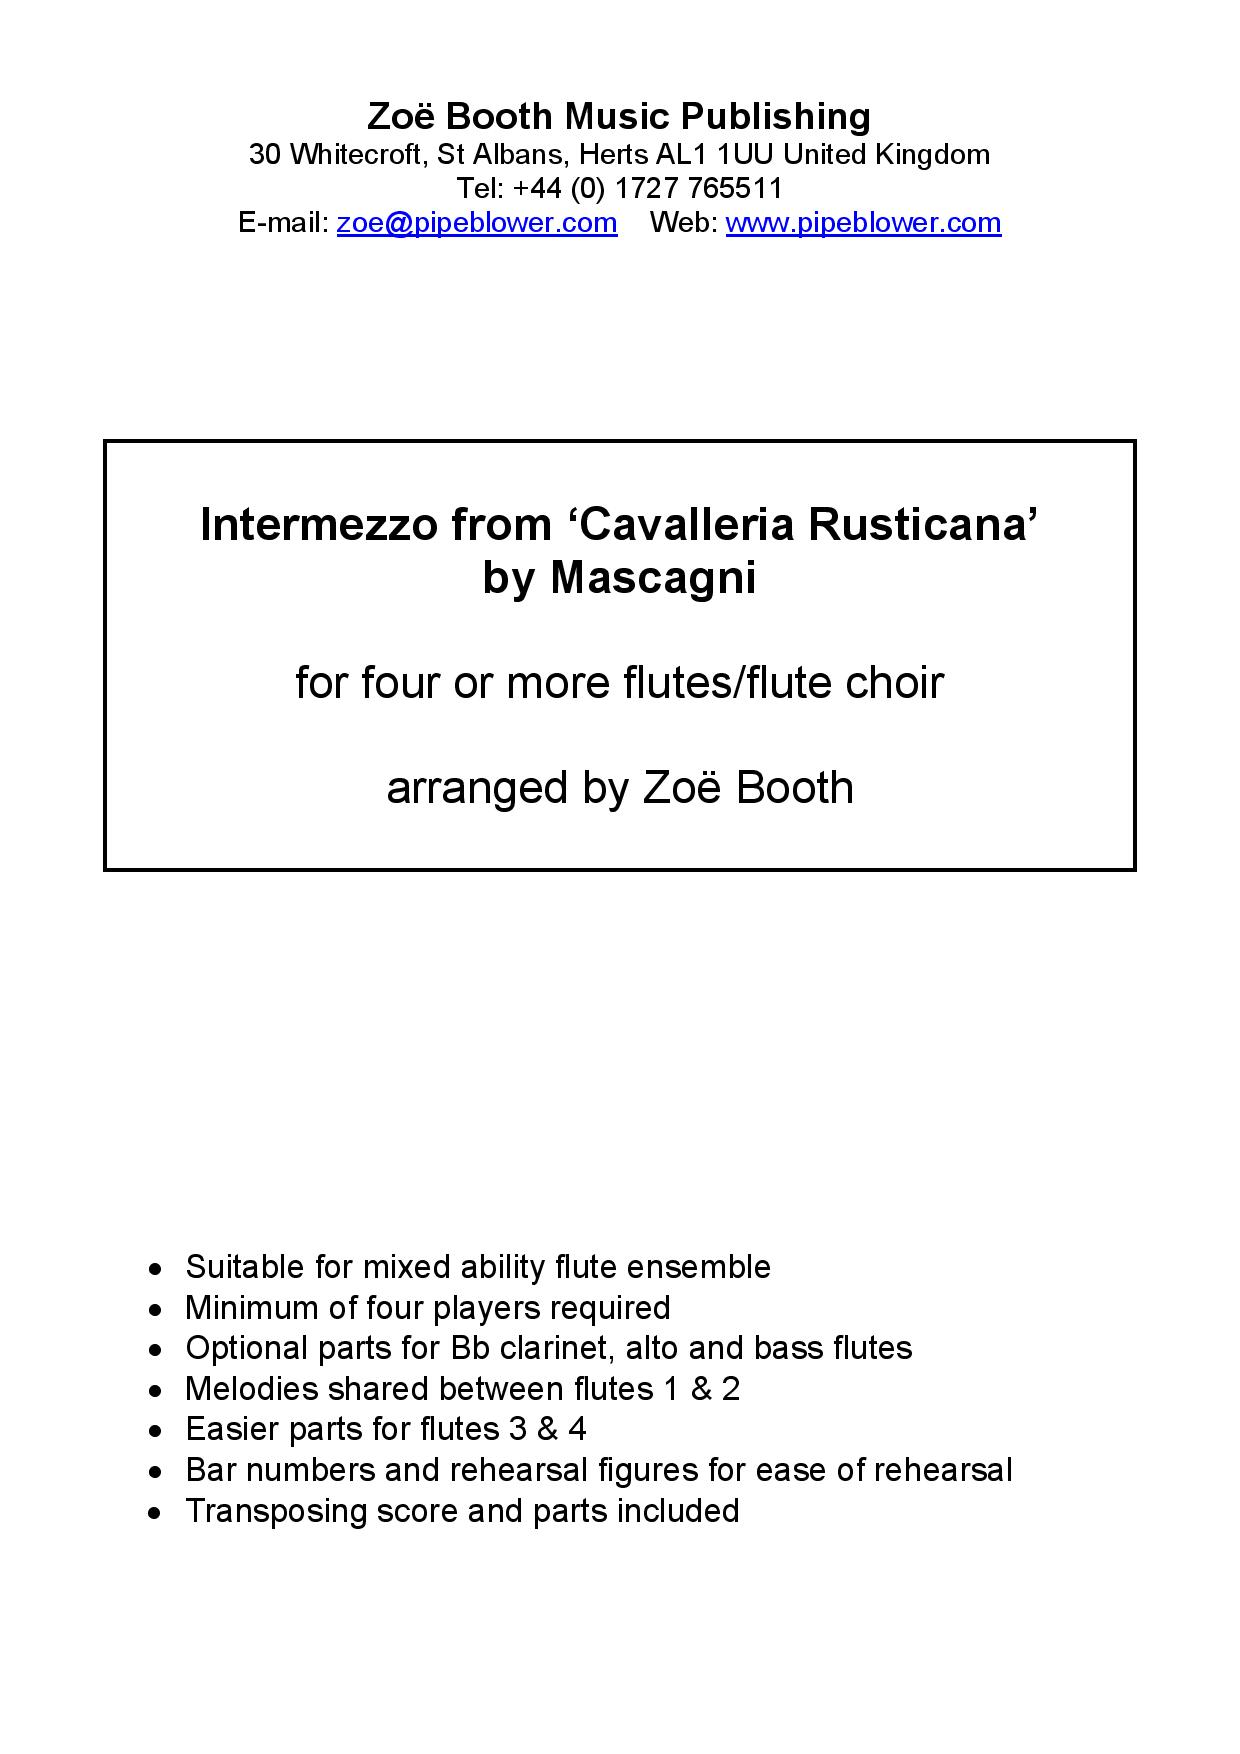 Intermezzo by Mascagni,  arranged by Zoë Booth for four or more flutes/flute choir